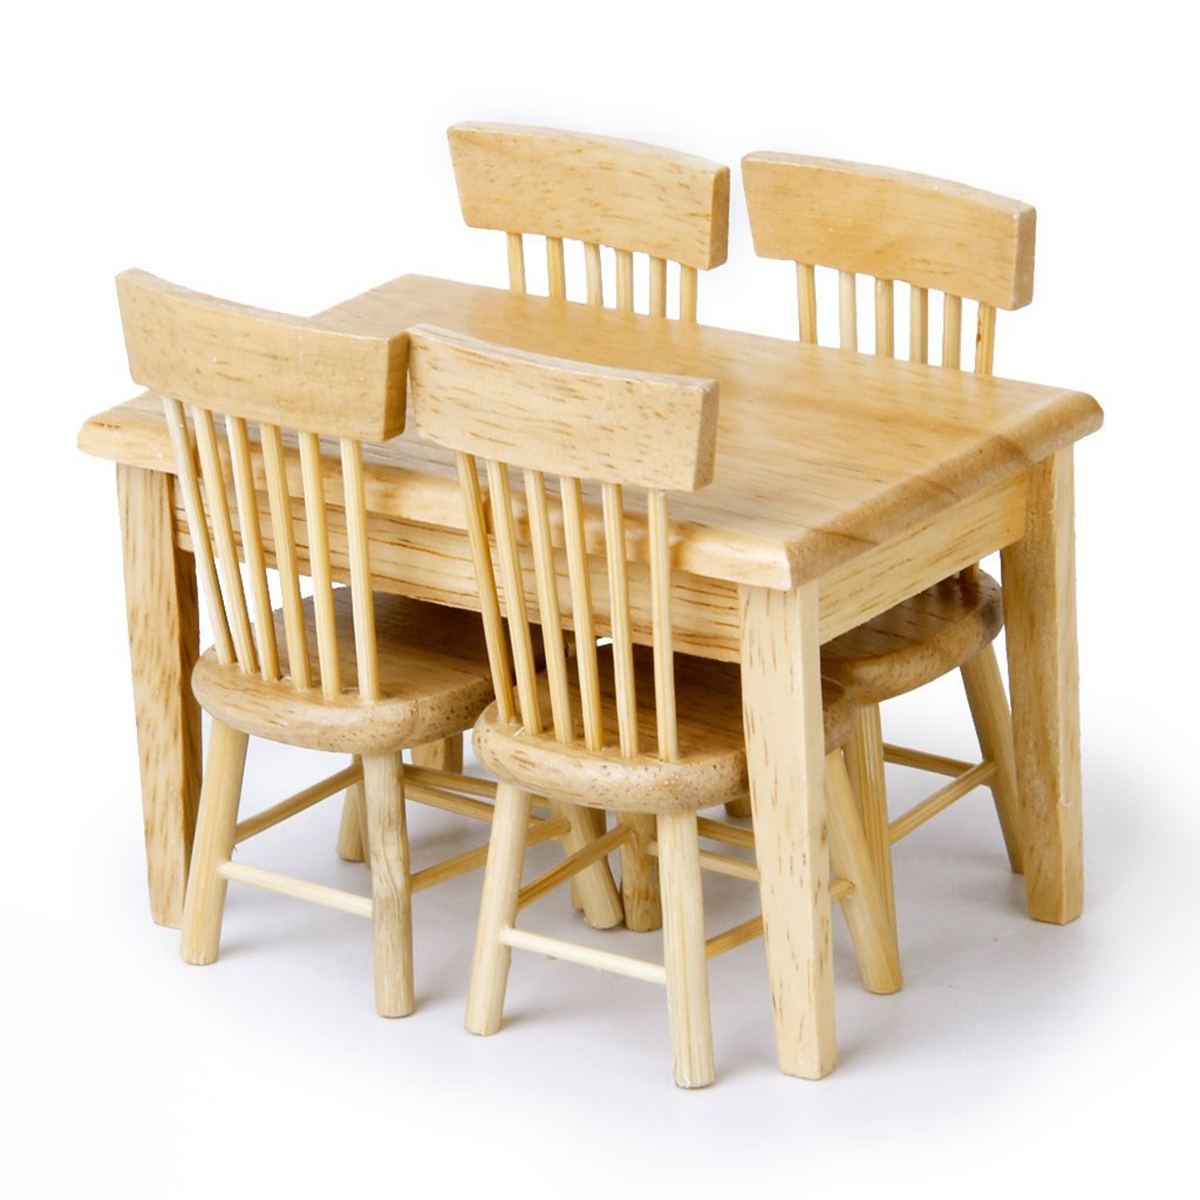 5pcs/set 1/12 Dollhouse Miniature Dining Table Chair Wooden Furniture Set (wood Color)